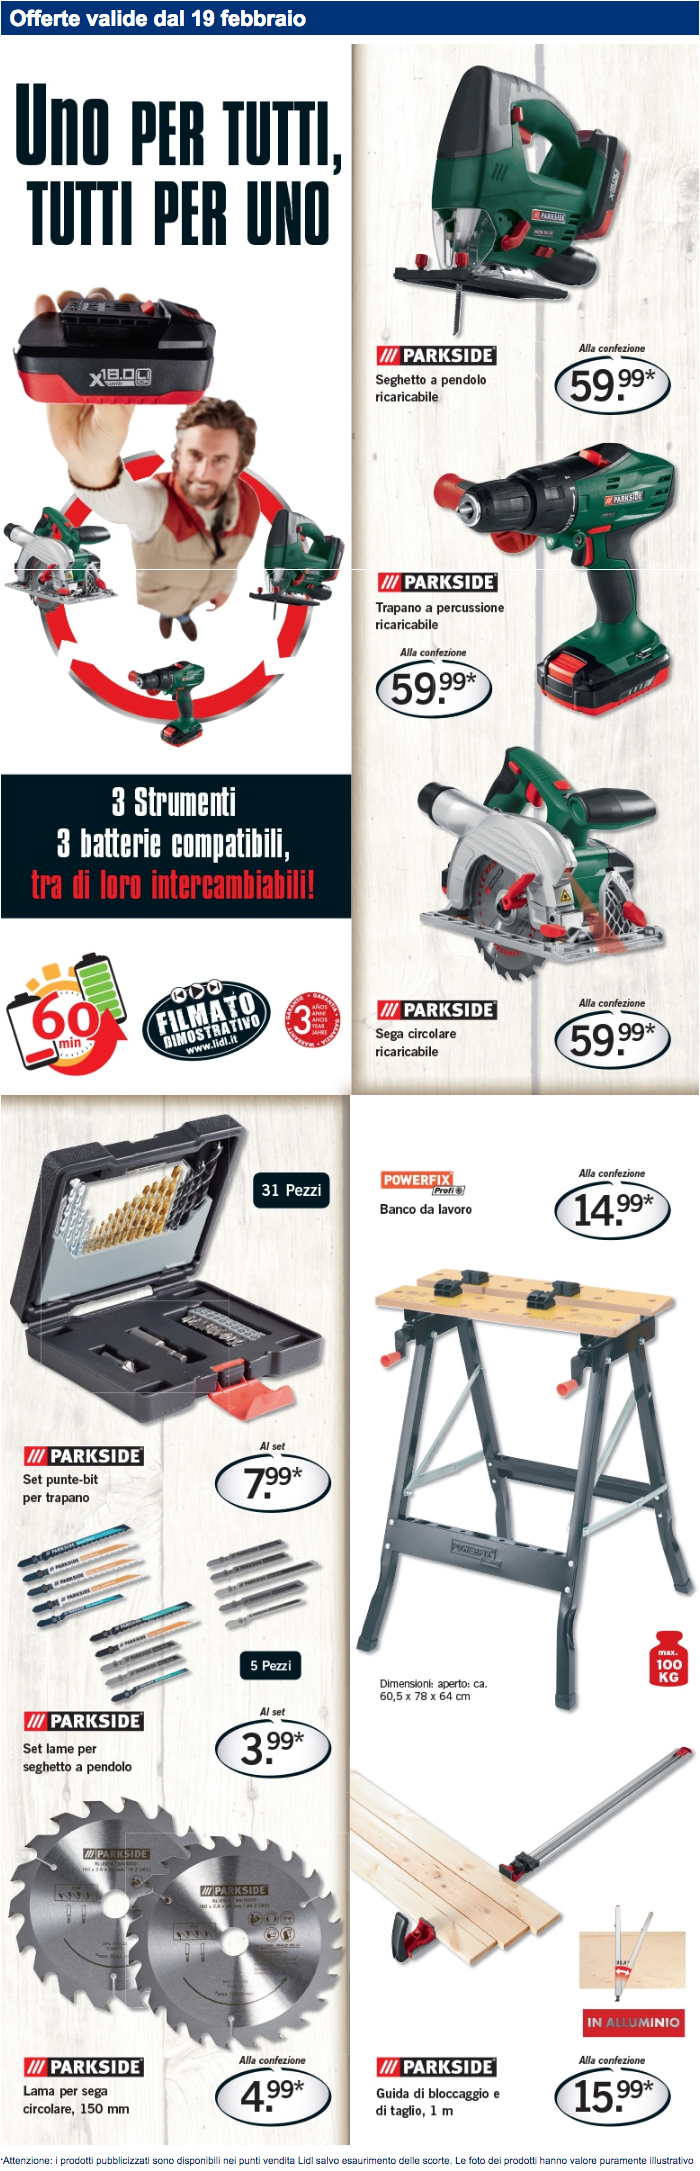 Parkside offerta lidl fai da te del 19 02 ne vale for Seghetto alternativo parkside lidl